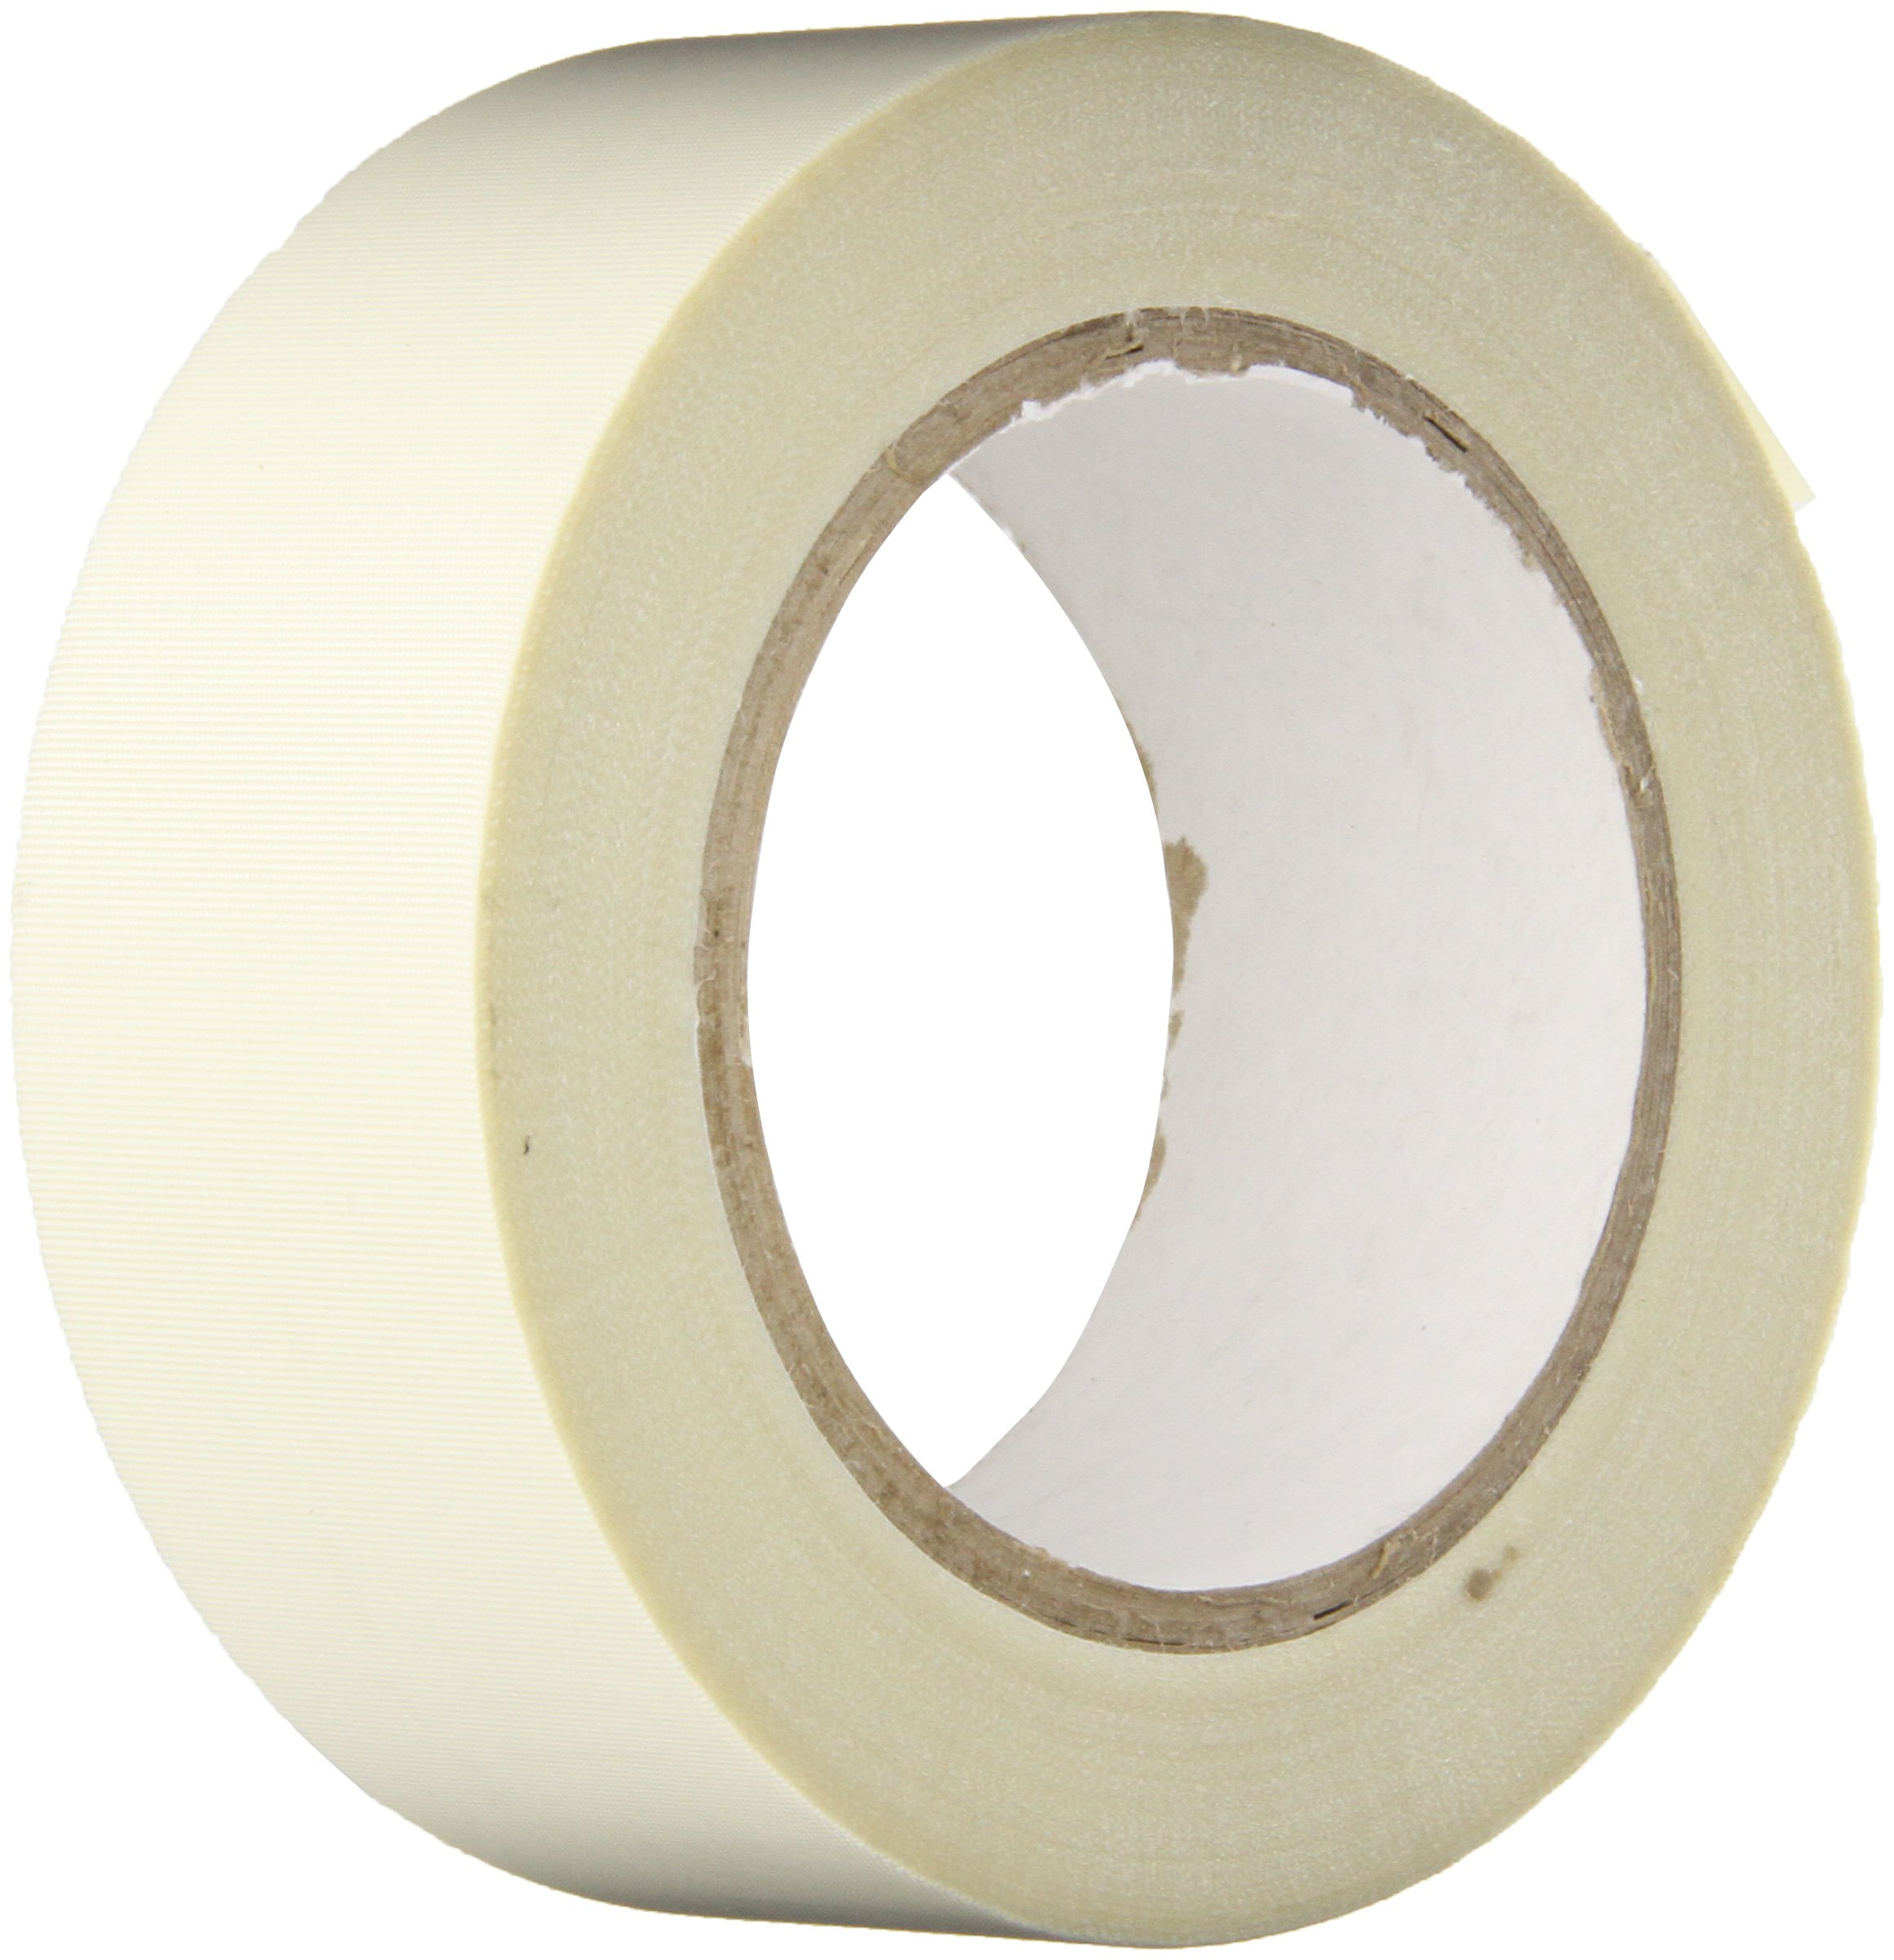 CS Hyde 17-FibG-DS Double Sided Fiberglass Tape with Silicone Adhesive, 1.75'' x 36 Yards